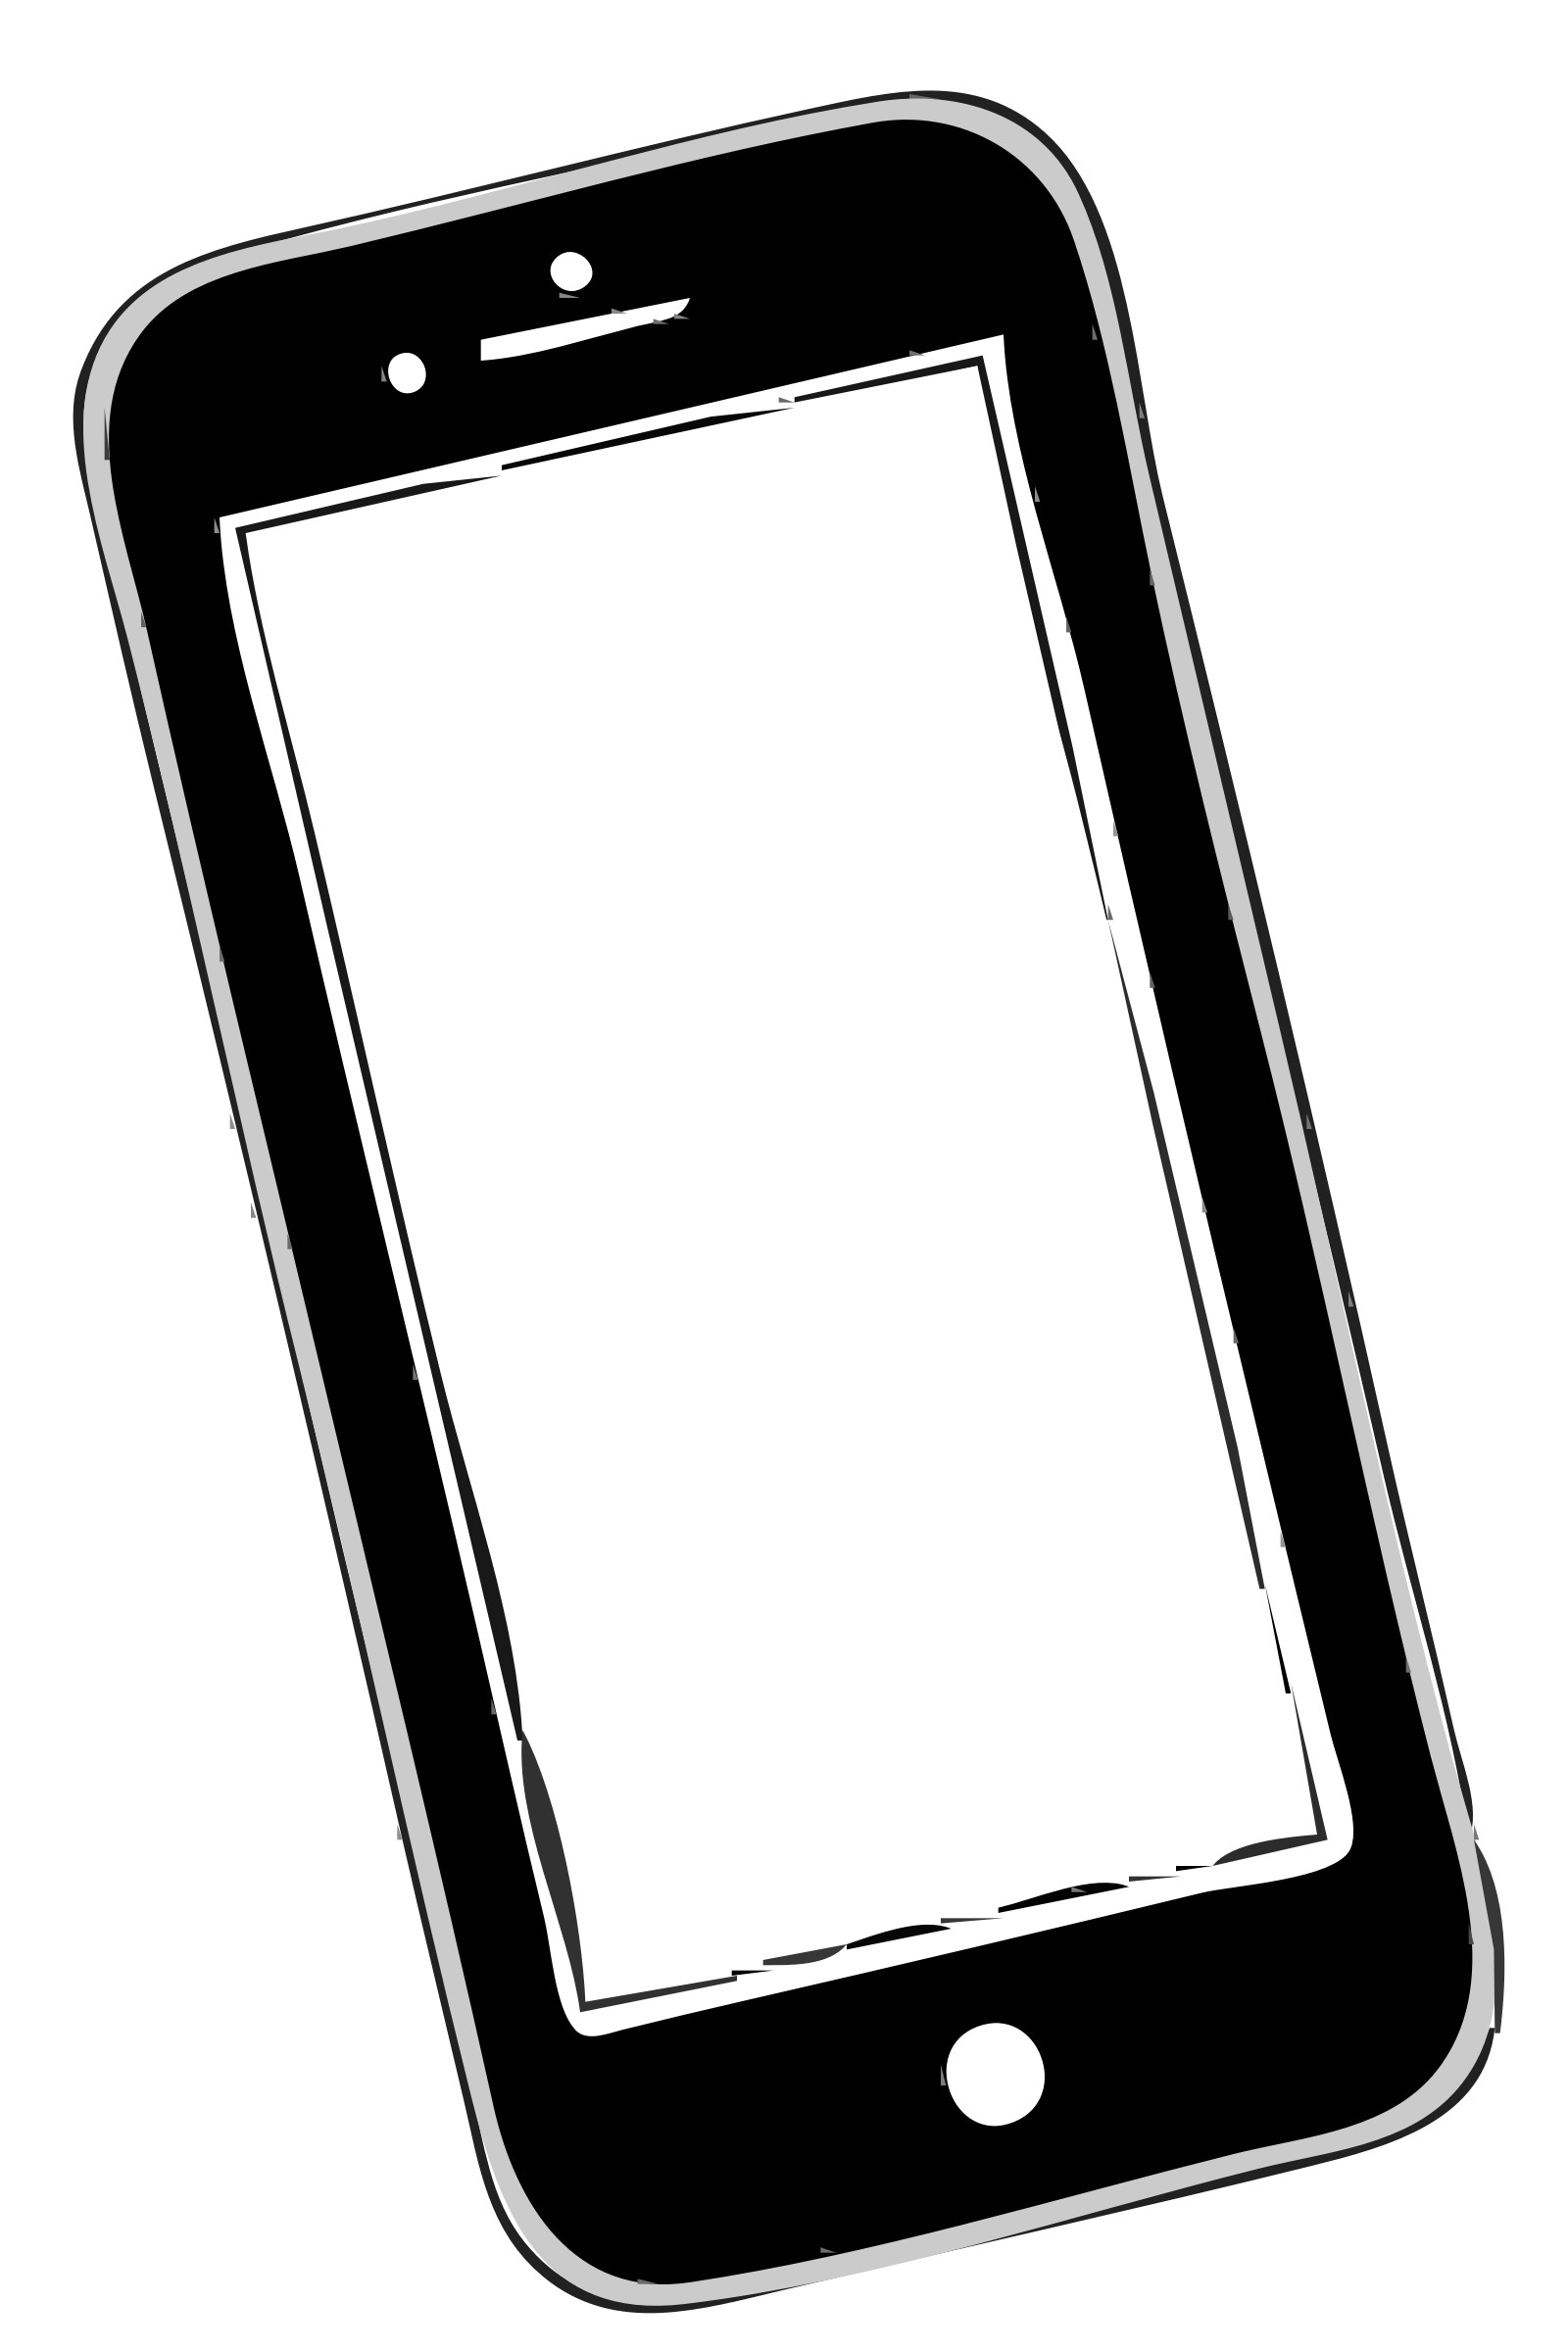 Phone clipart. Backgrounds at mobile ohidul